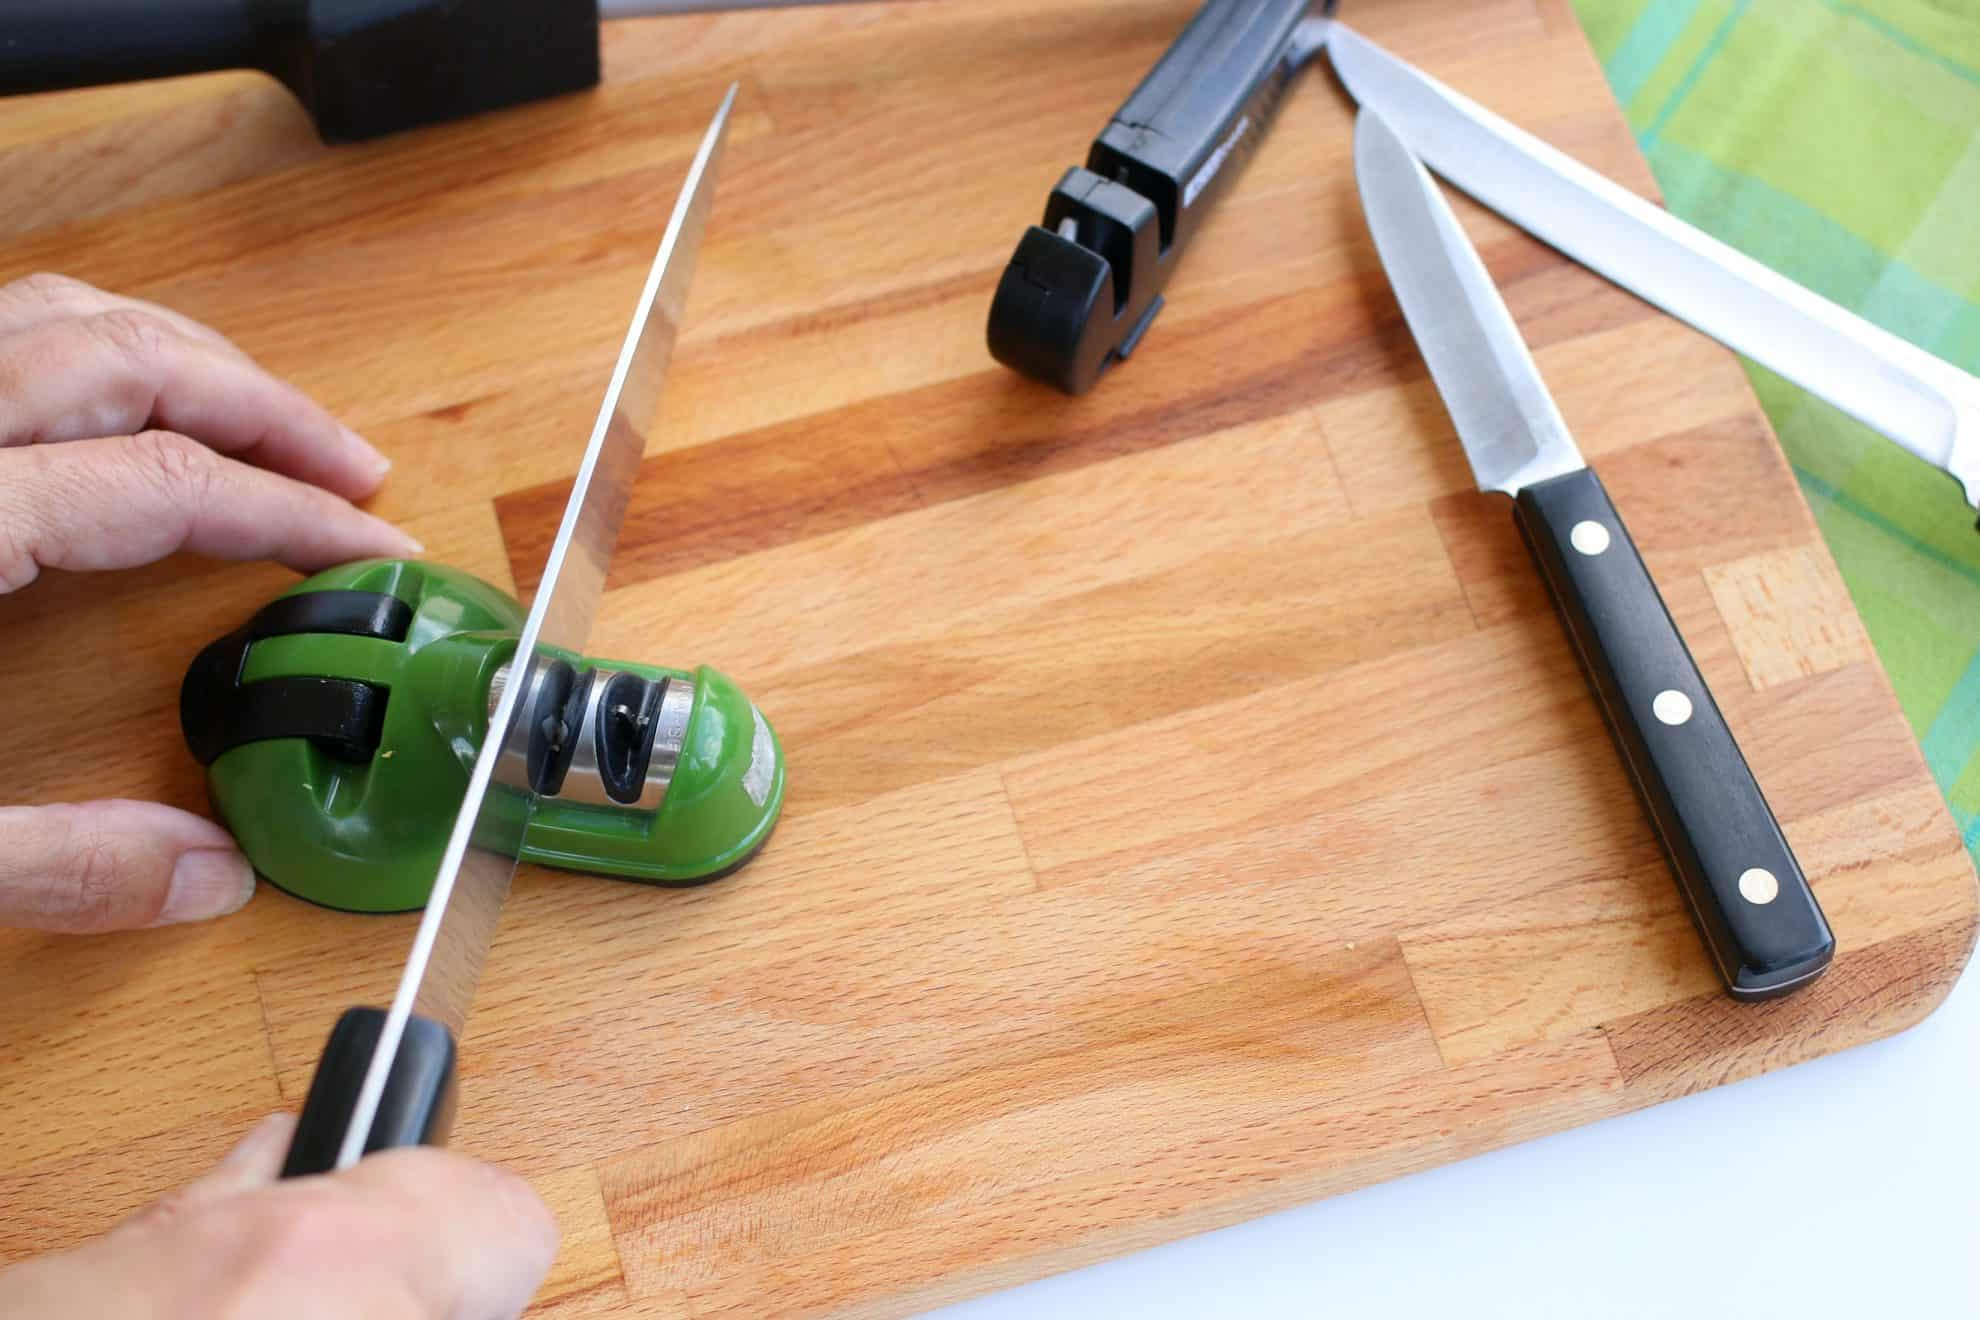 Sharpening a kitchen knife using a multi-function sharpener.